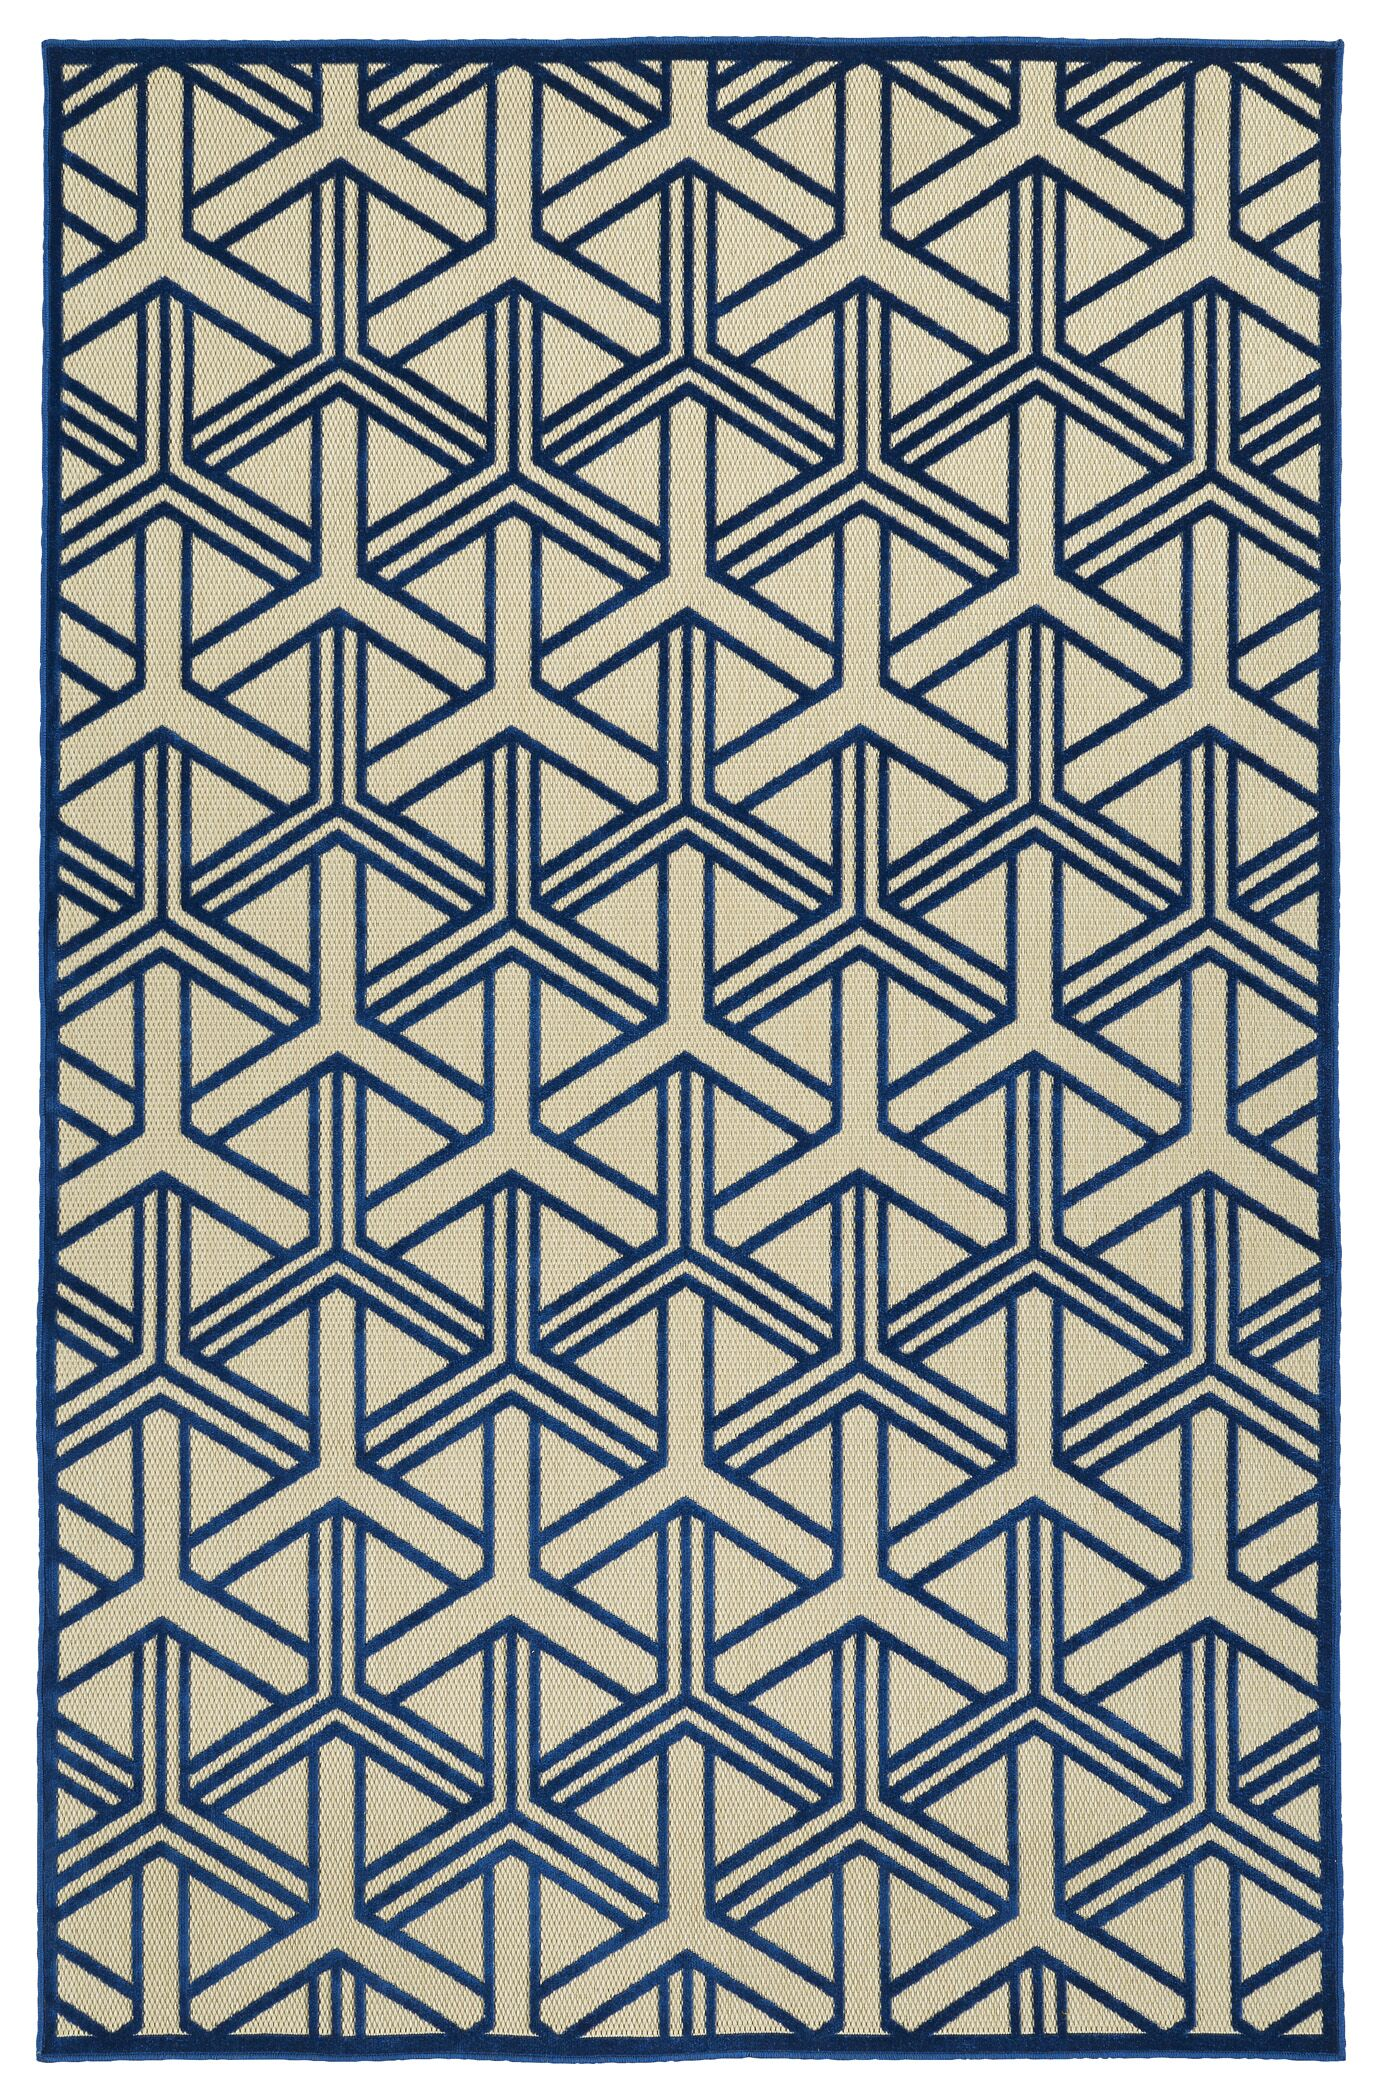 Alterson Machine Woven Navy/Cream Indoor/Outdoor Area Rug Rug Size: Rectangle 7'10